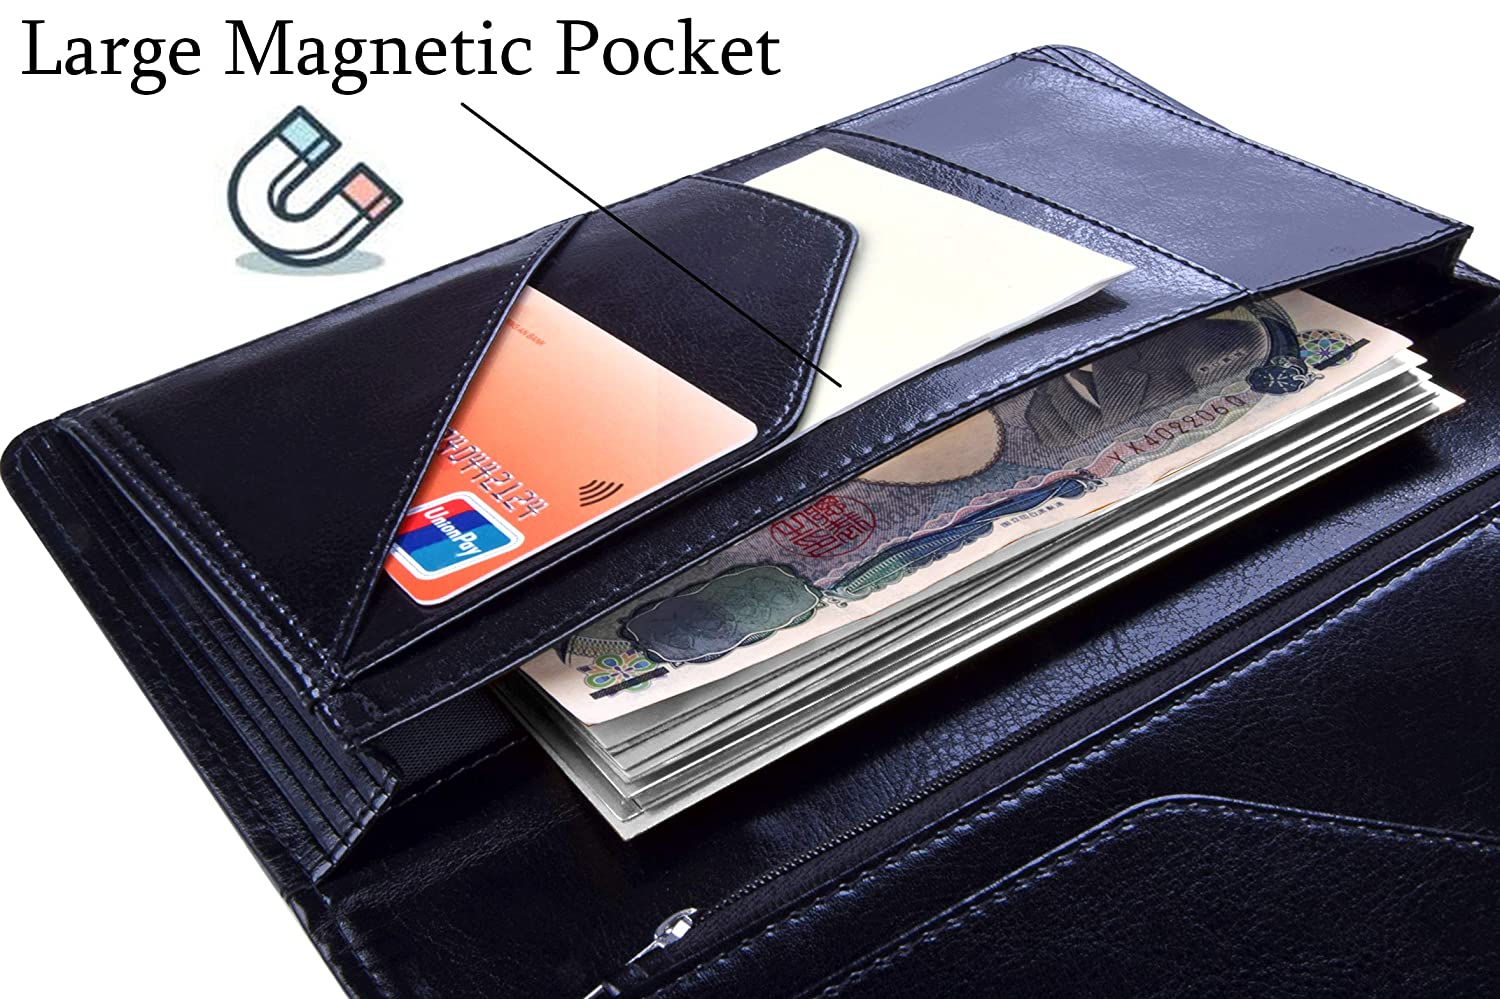 Details about  /5x9 Server Book for Waitress Organizer Magnetic With Zipper Money Pocket Pad NEW